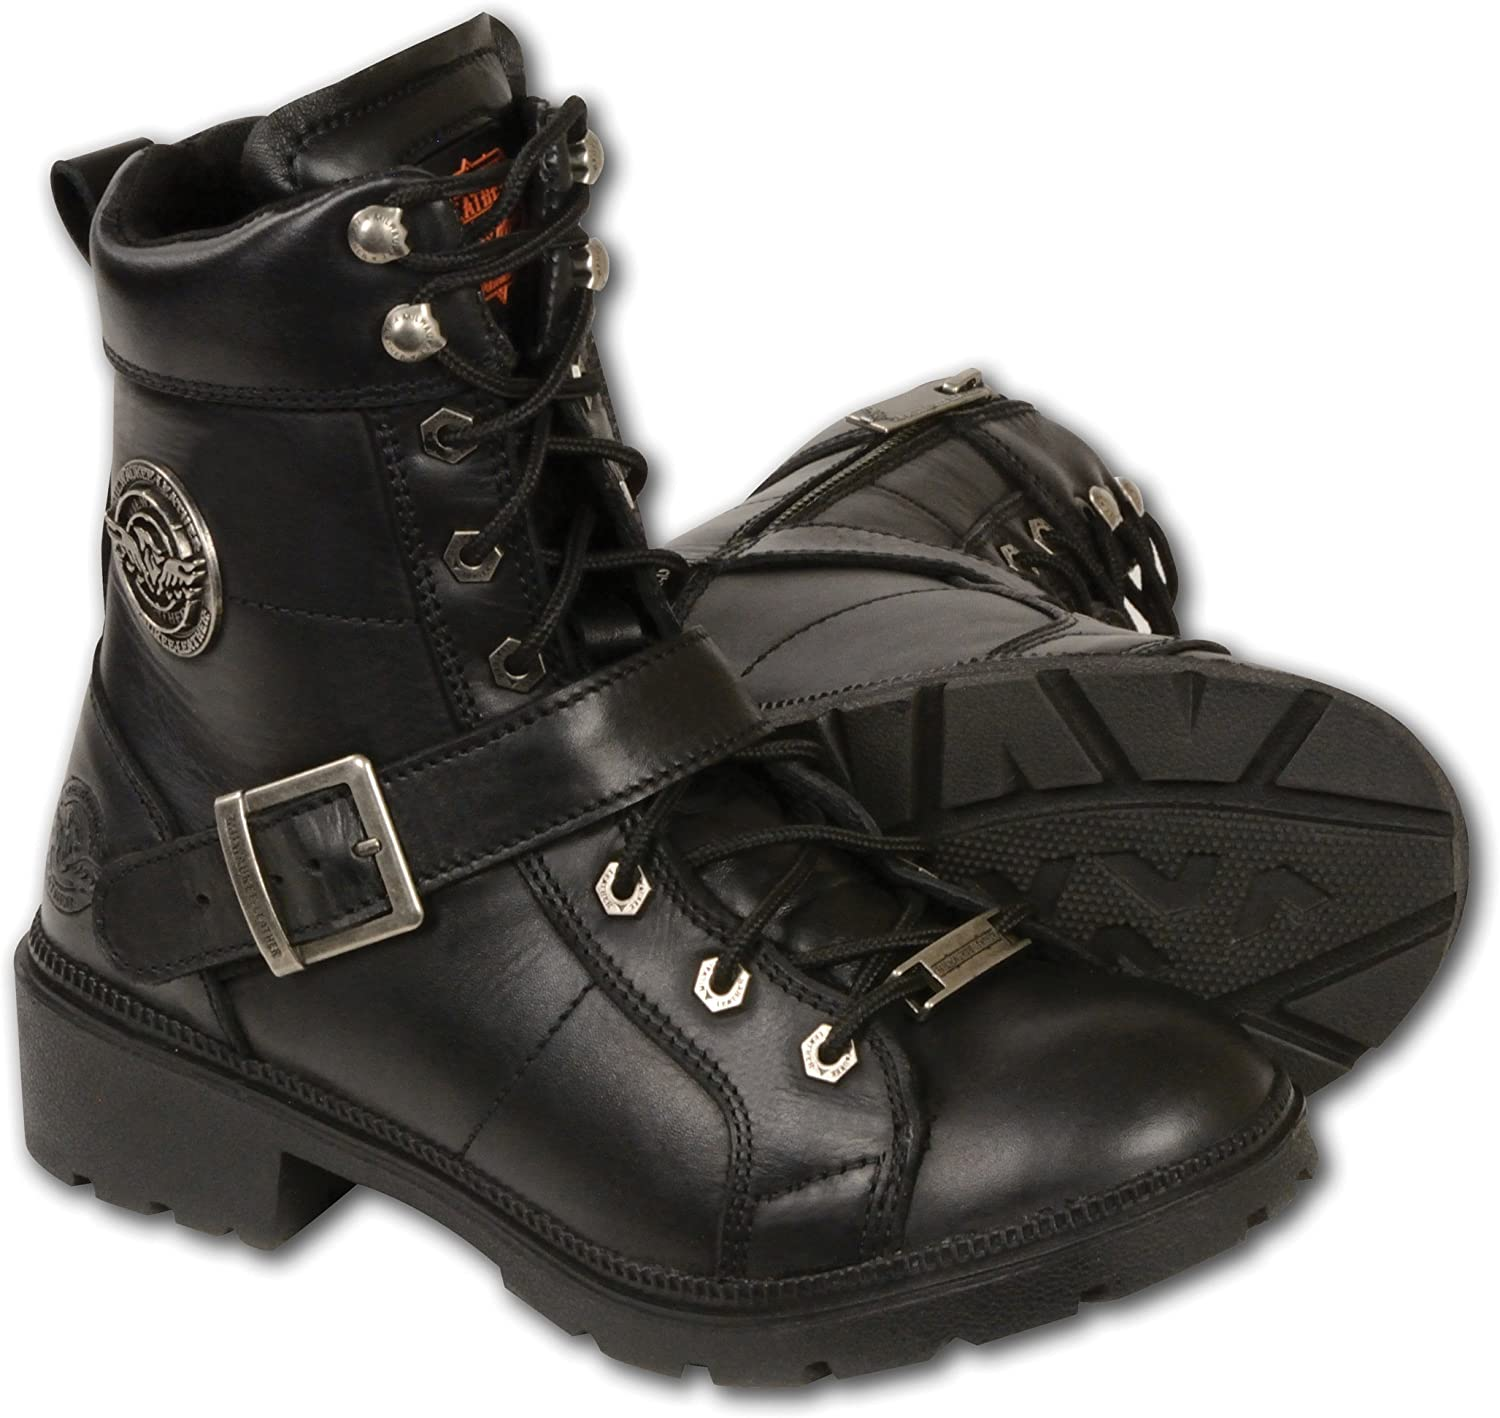 Milwaukee Women's Boots It is very popular with Lace and Front Closure Popular overseas Black Zip